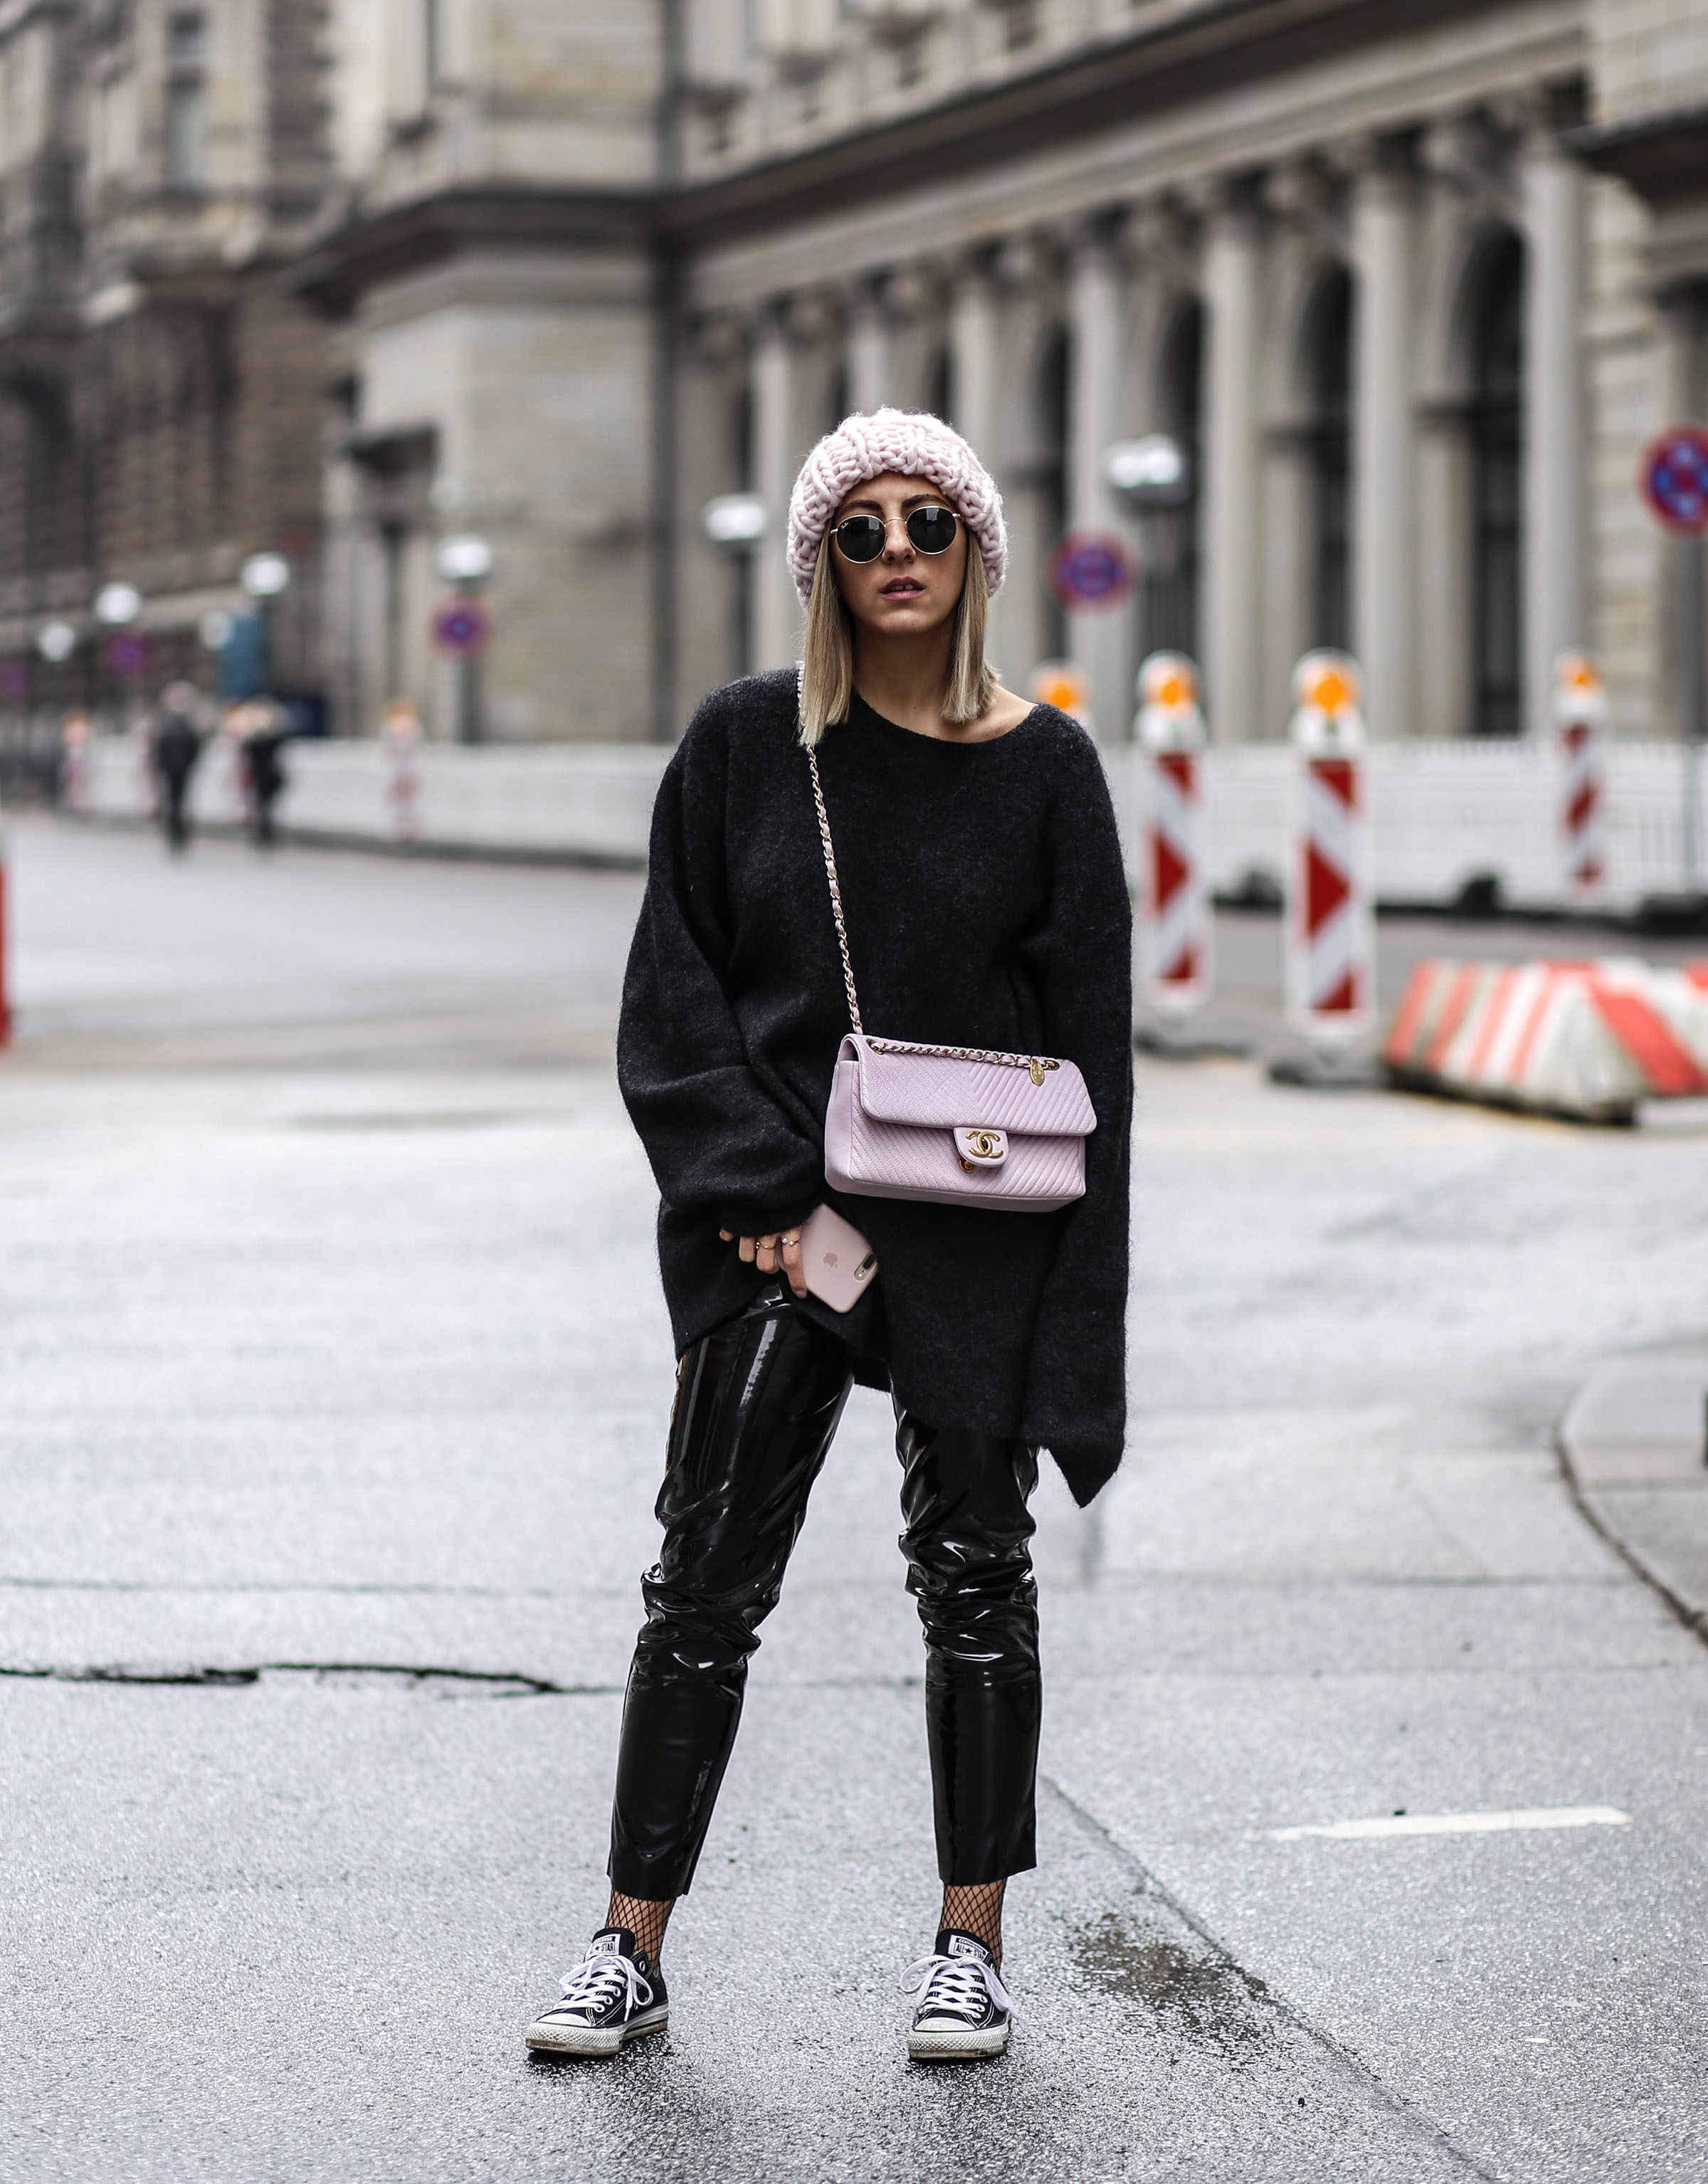 hm_trend_oversized_knit